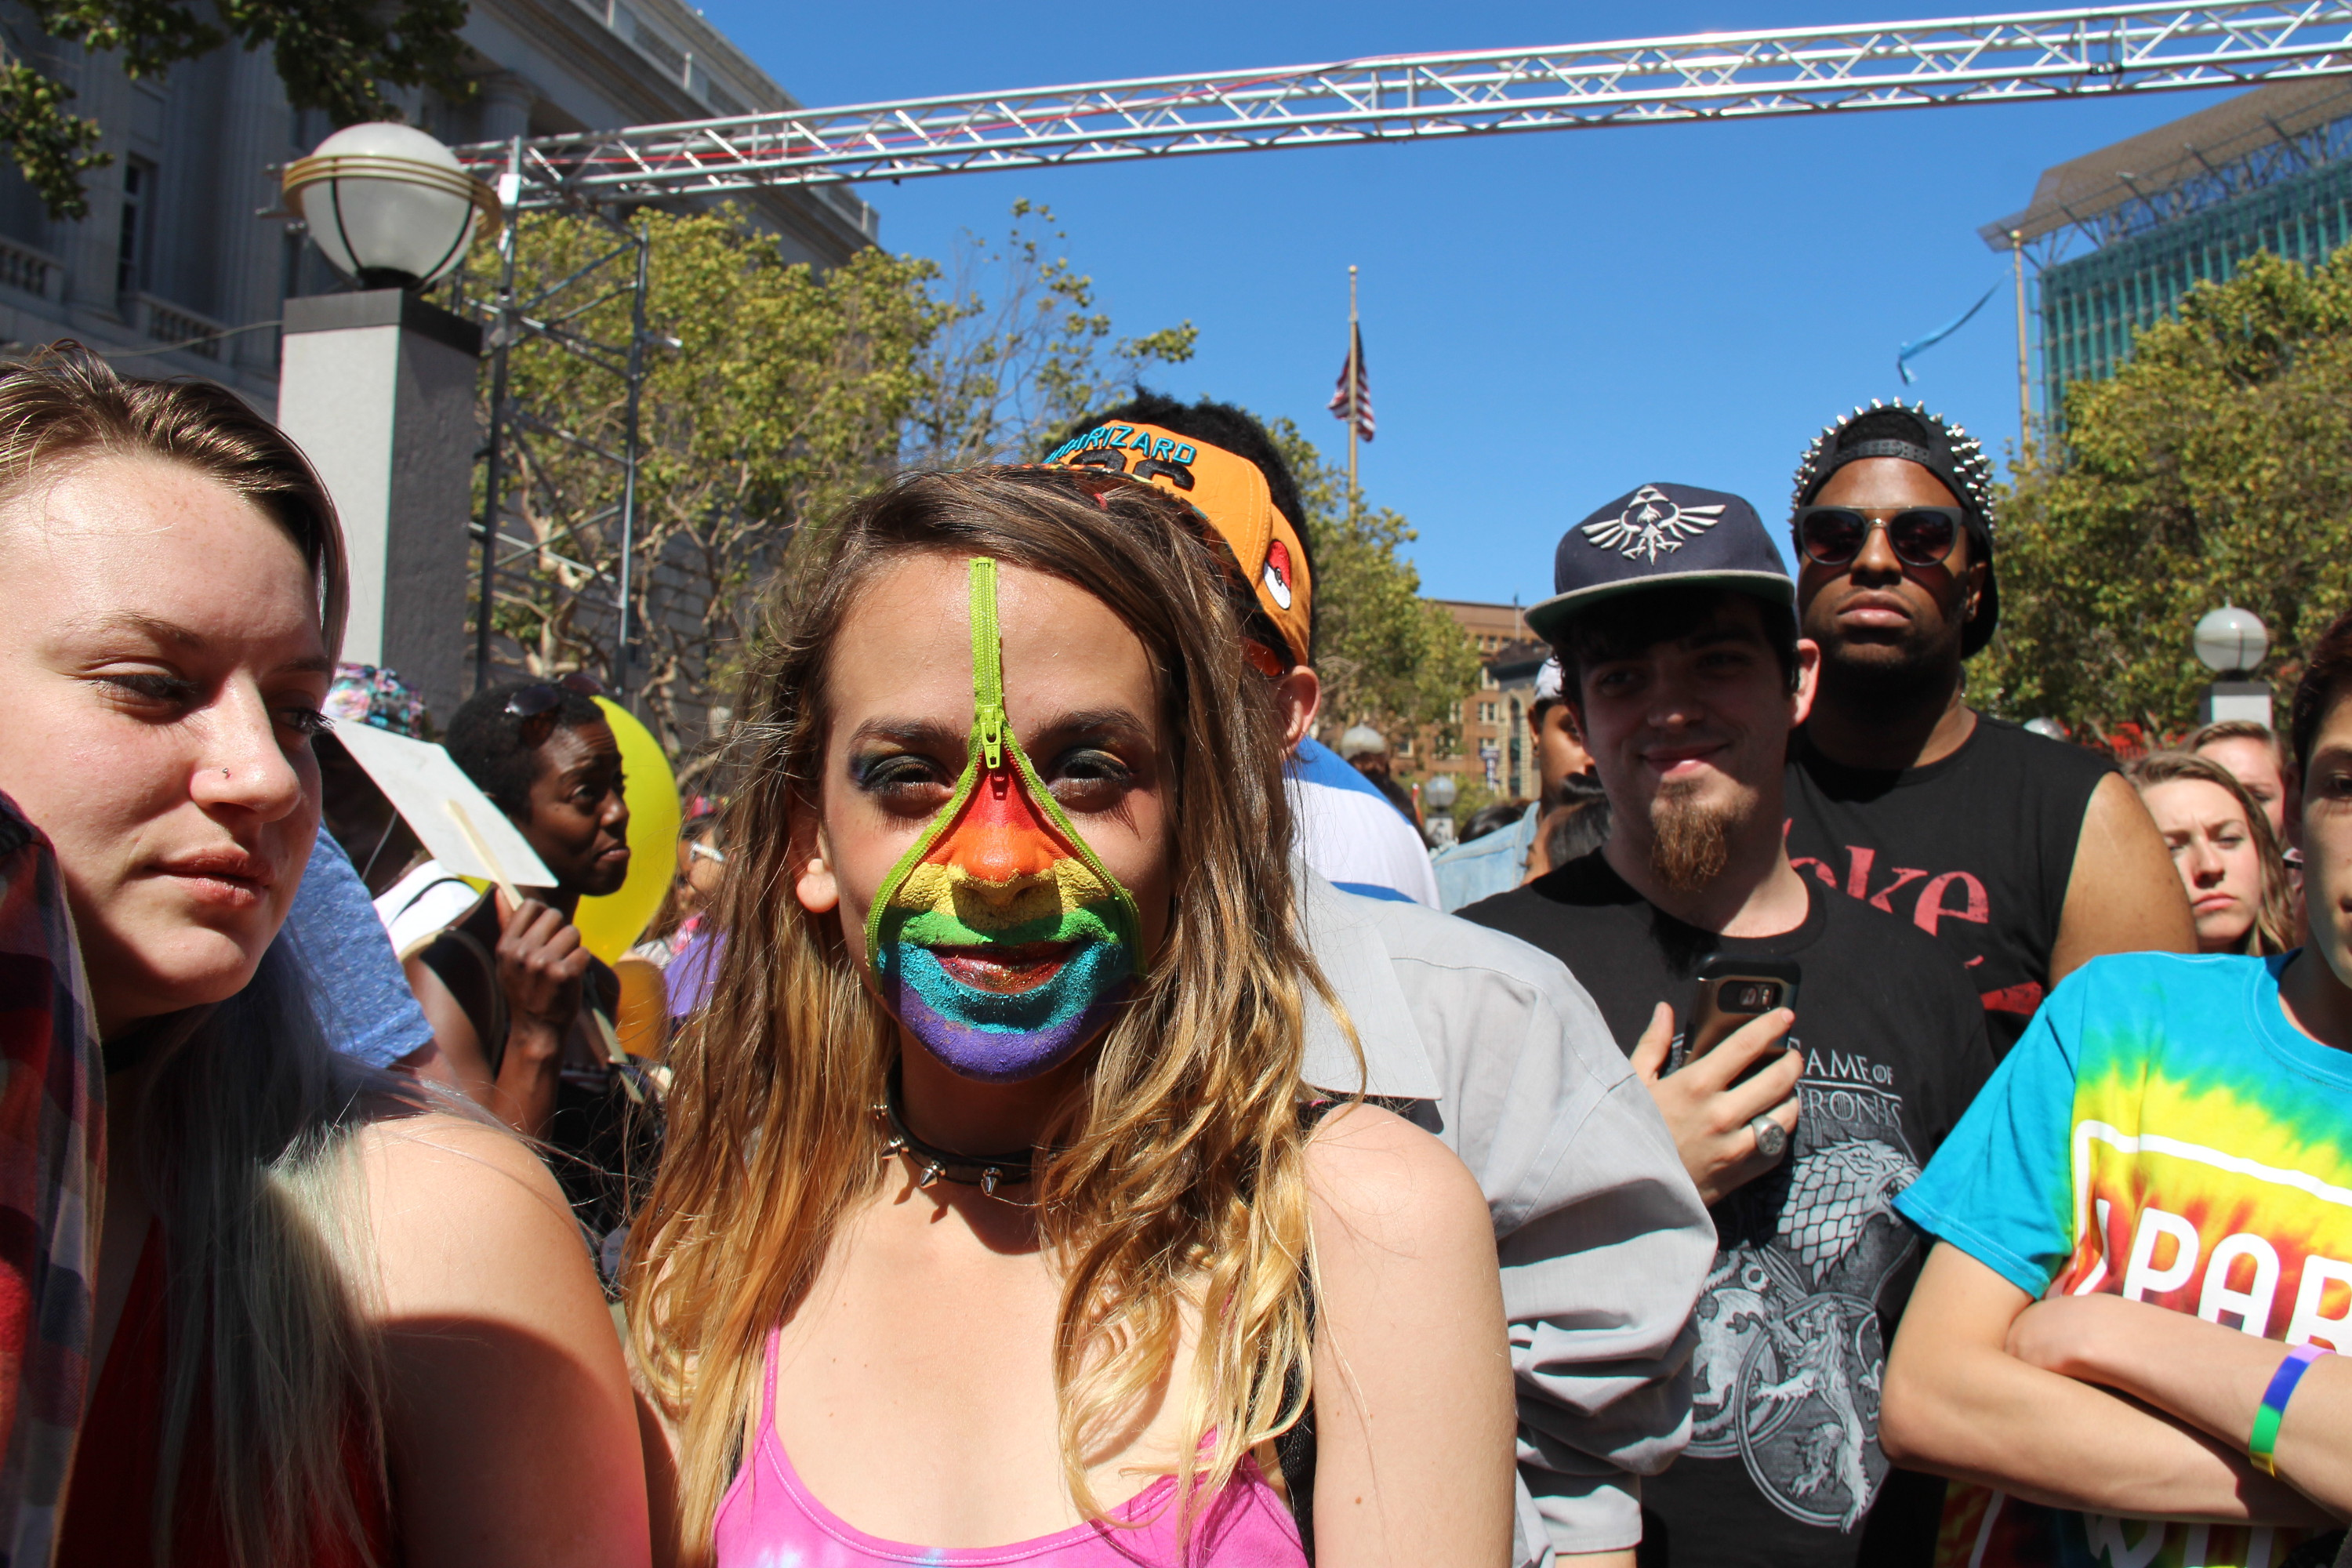 Young woman at gay pride festival in San Francisco, CA